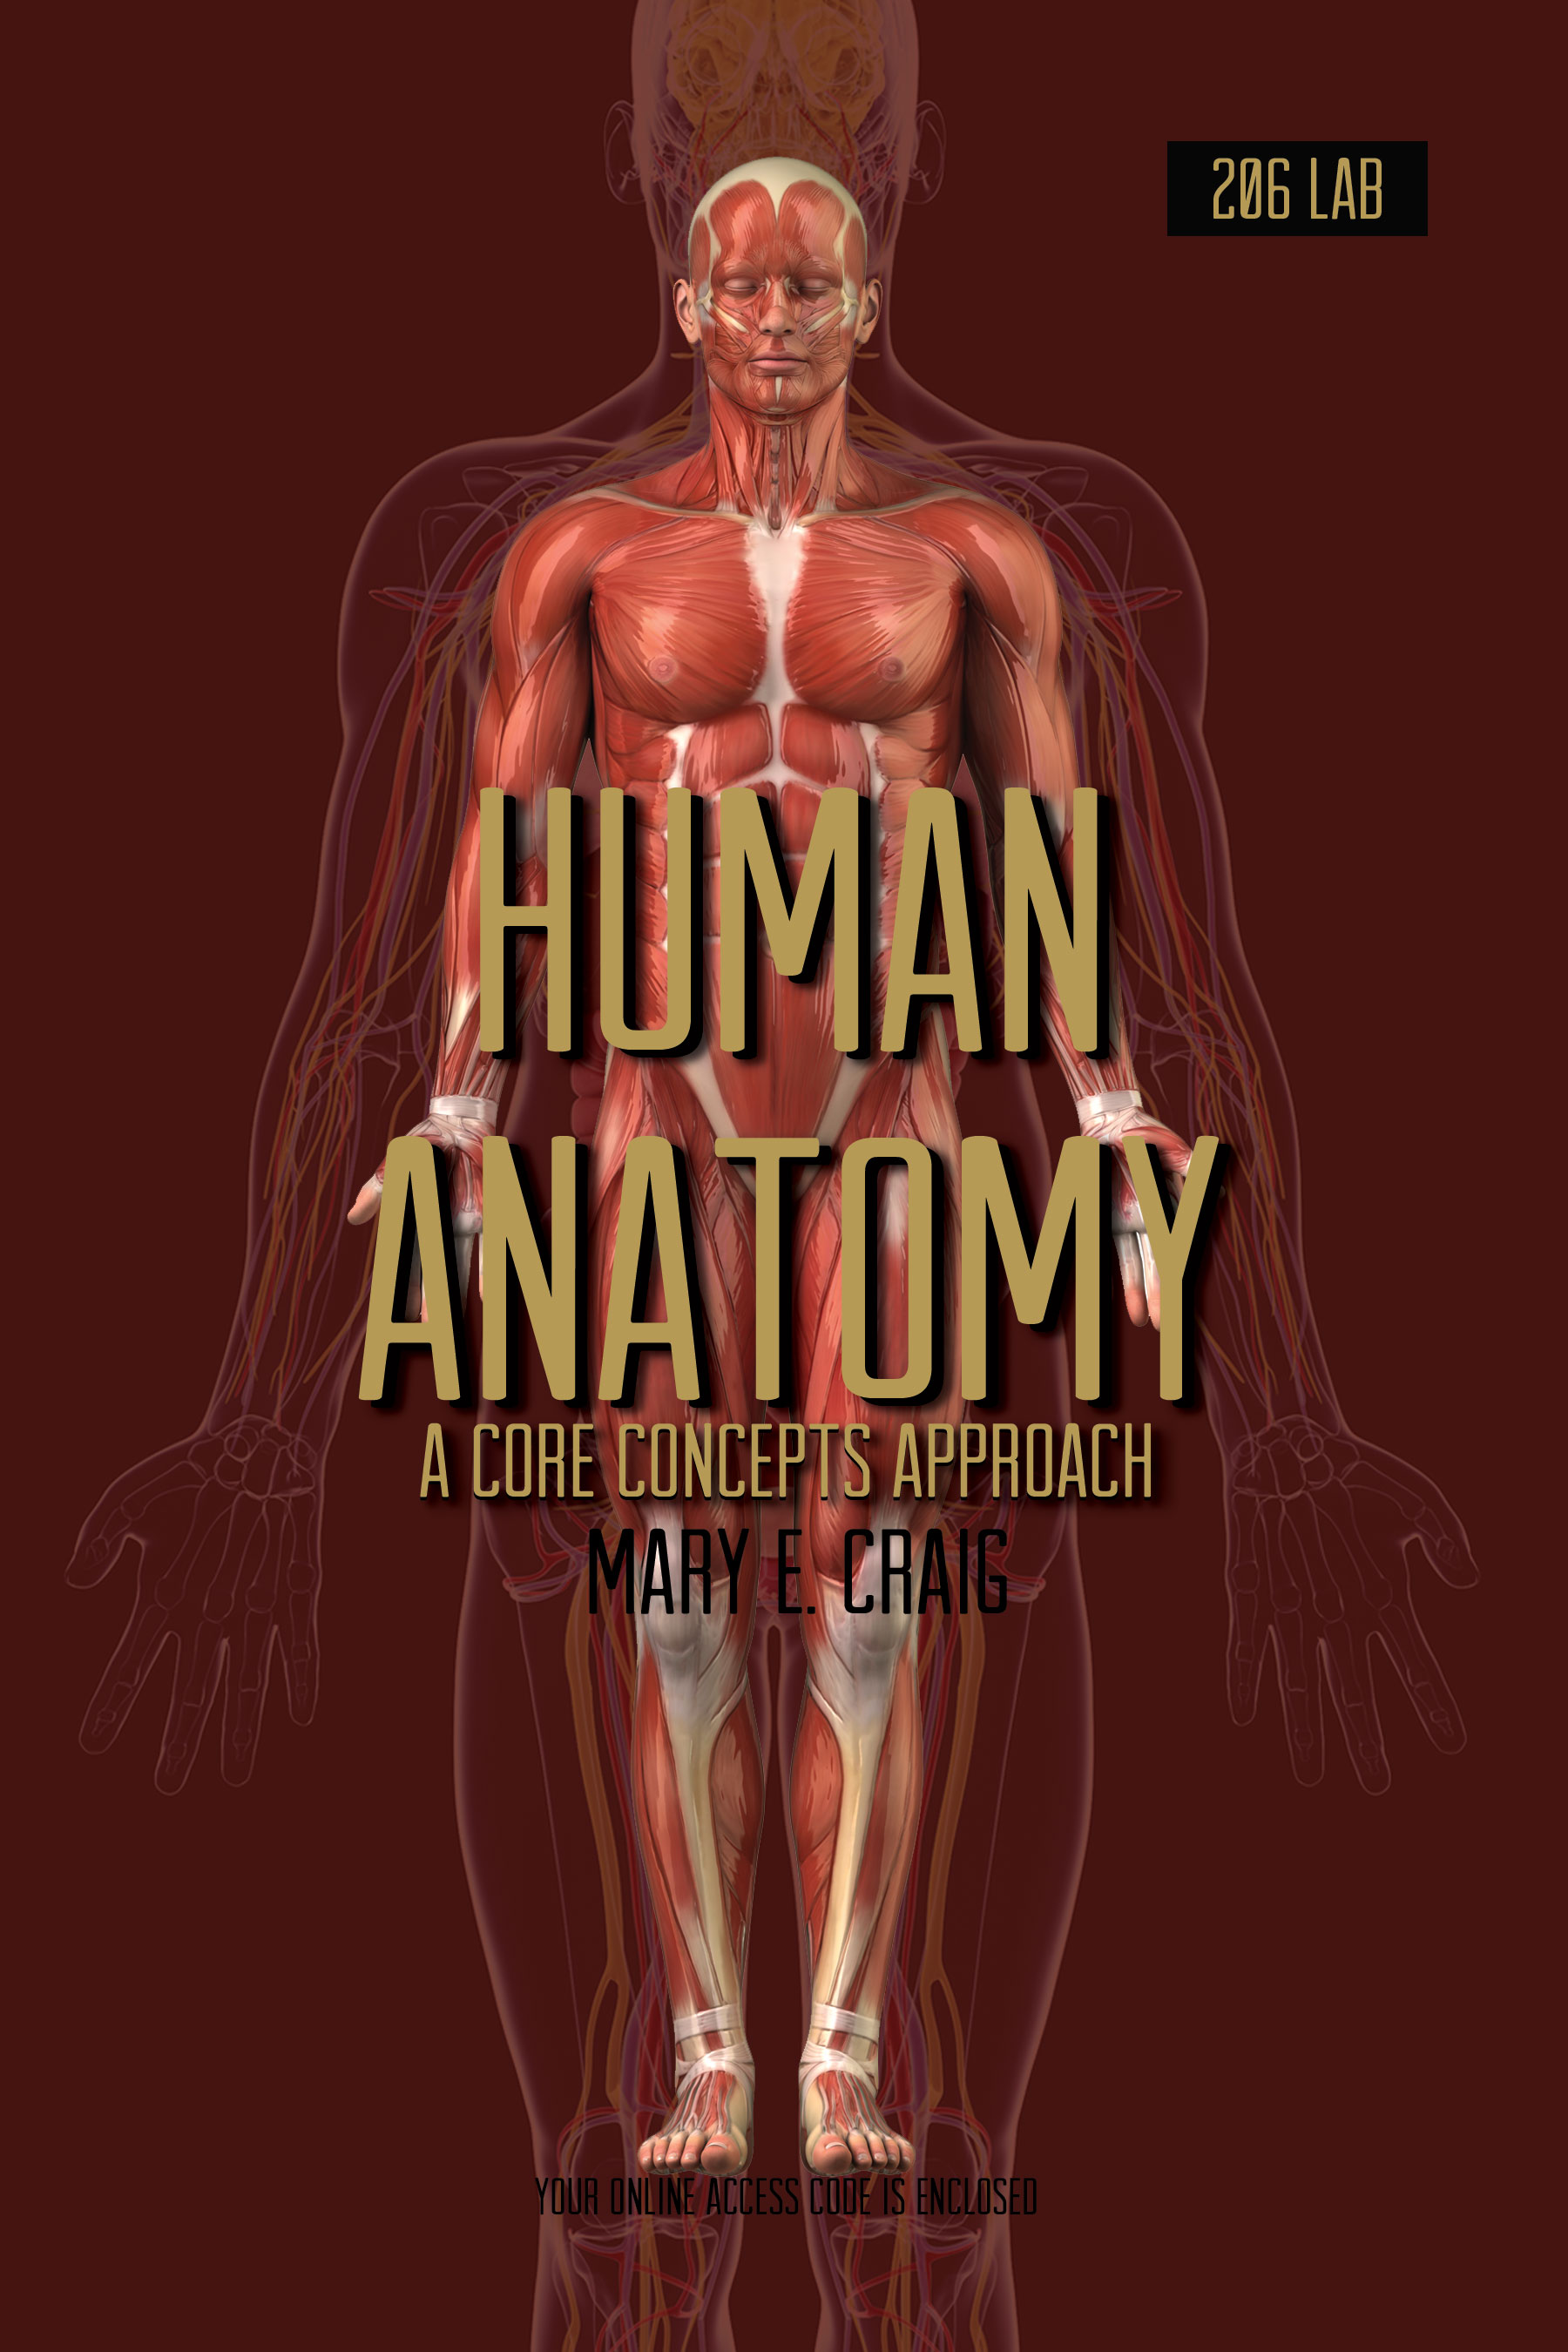 Product Details Human Anatomy A Core Concepts Approach Lab 206